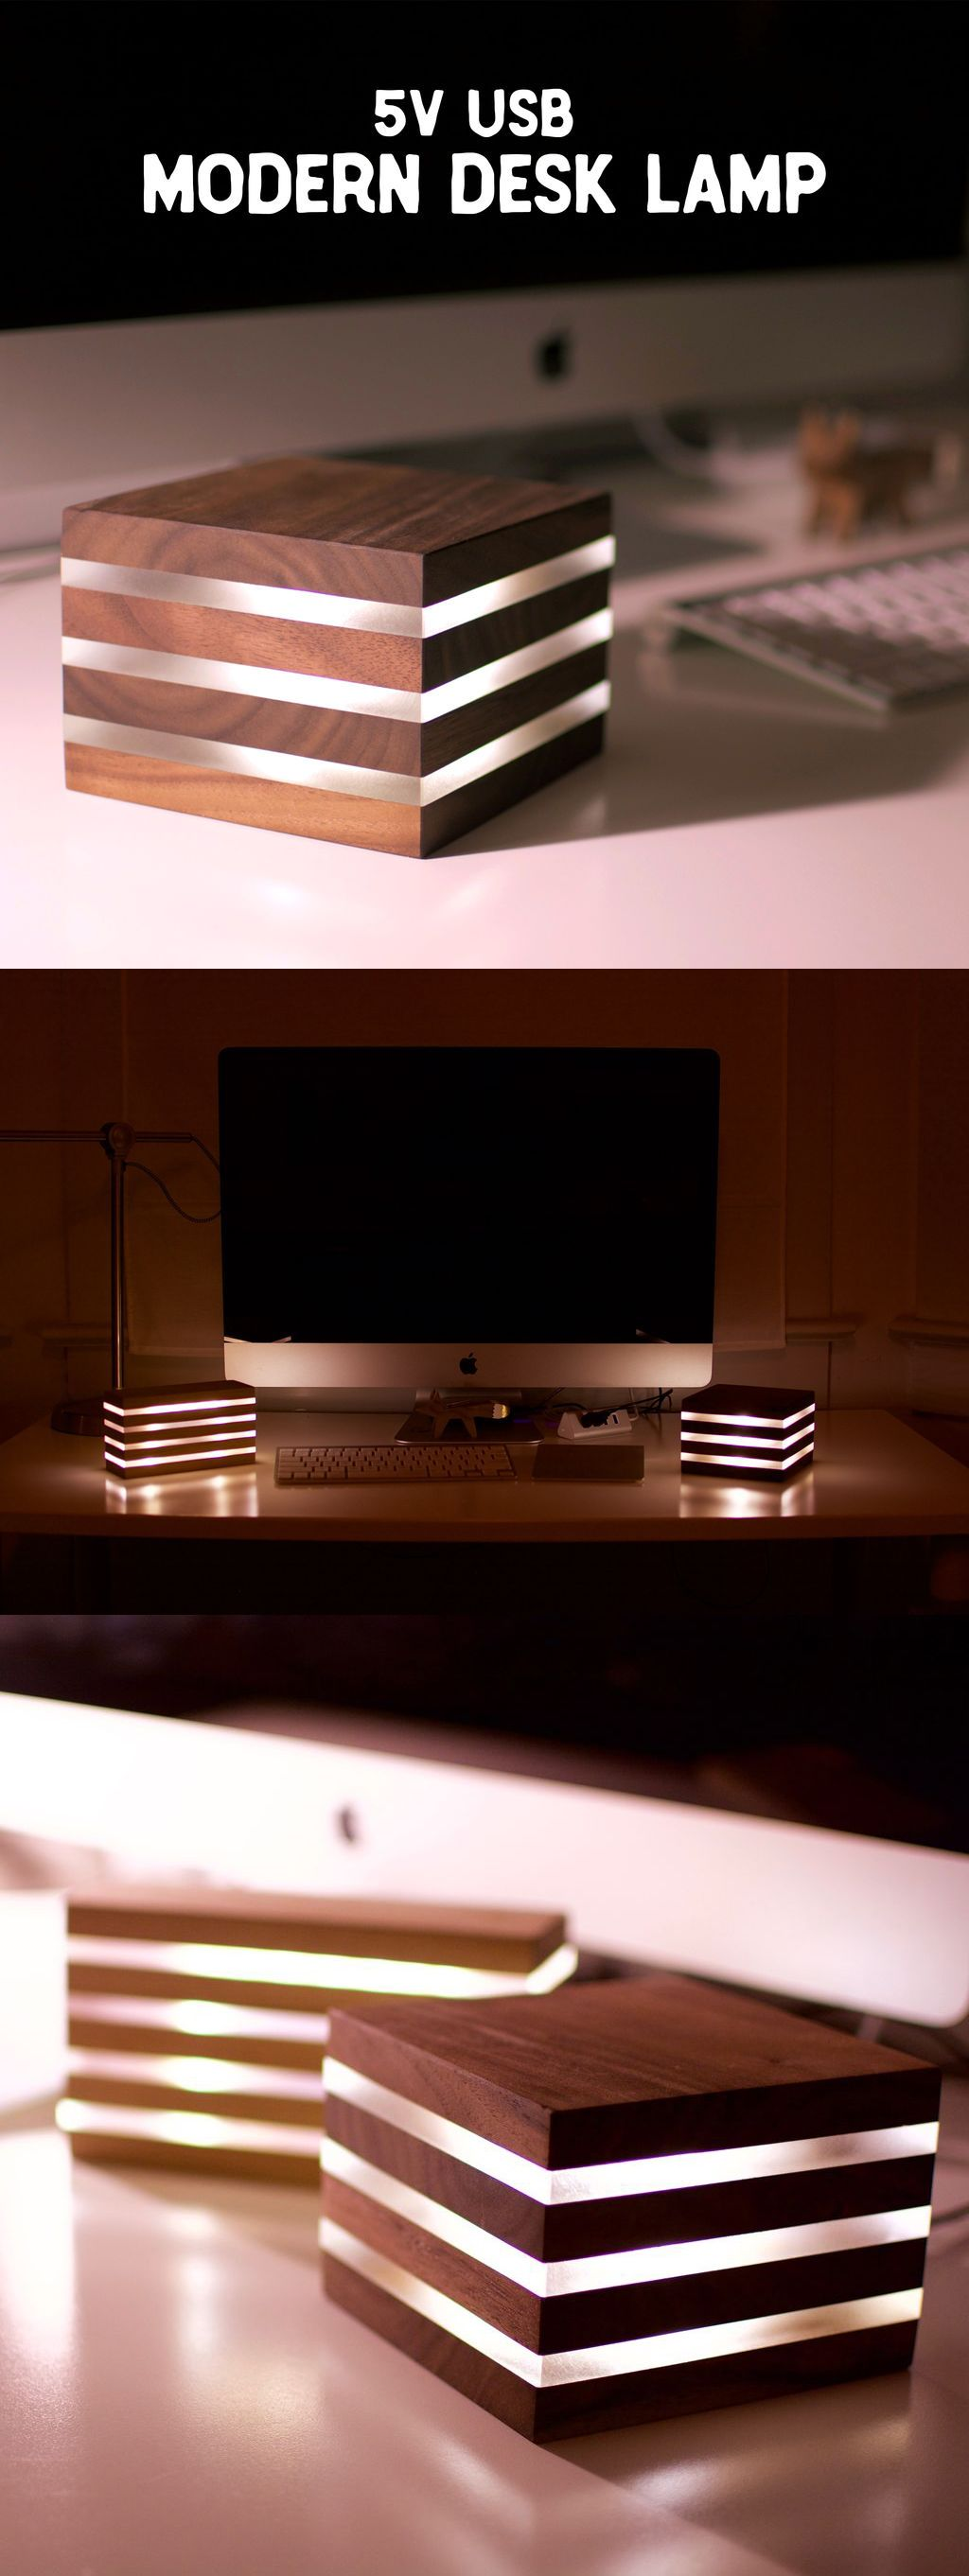 Modern led desk lamppowered by v usb desk lamp desks and modern